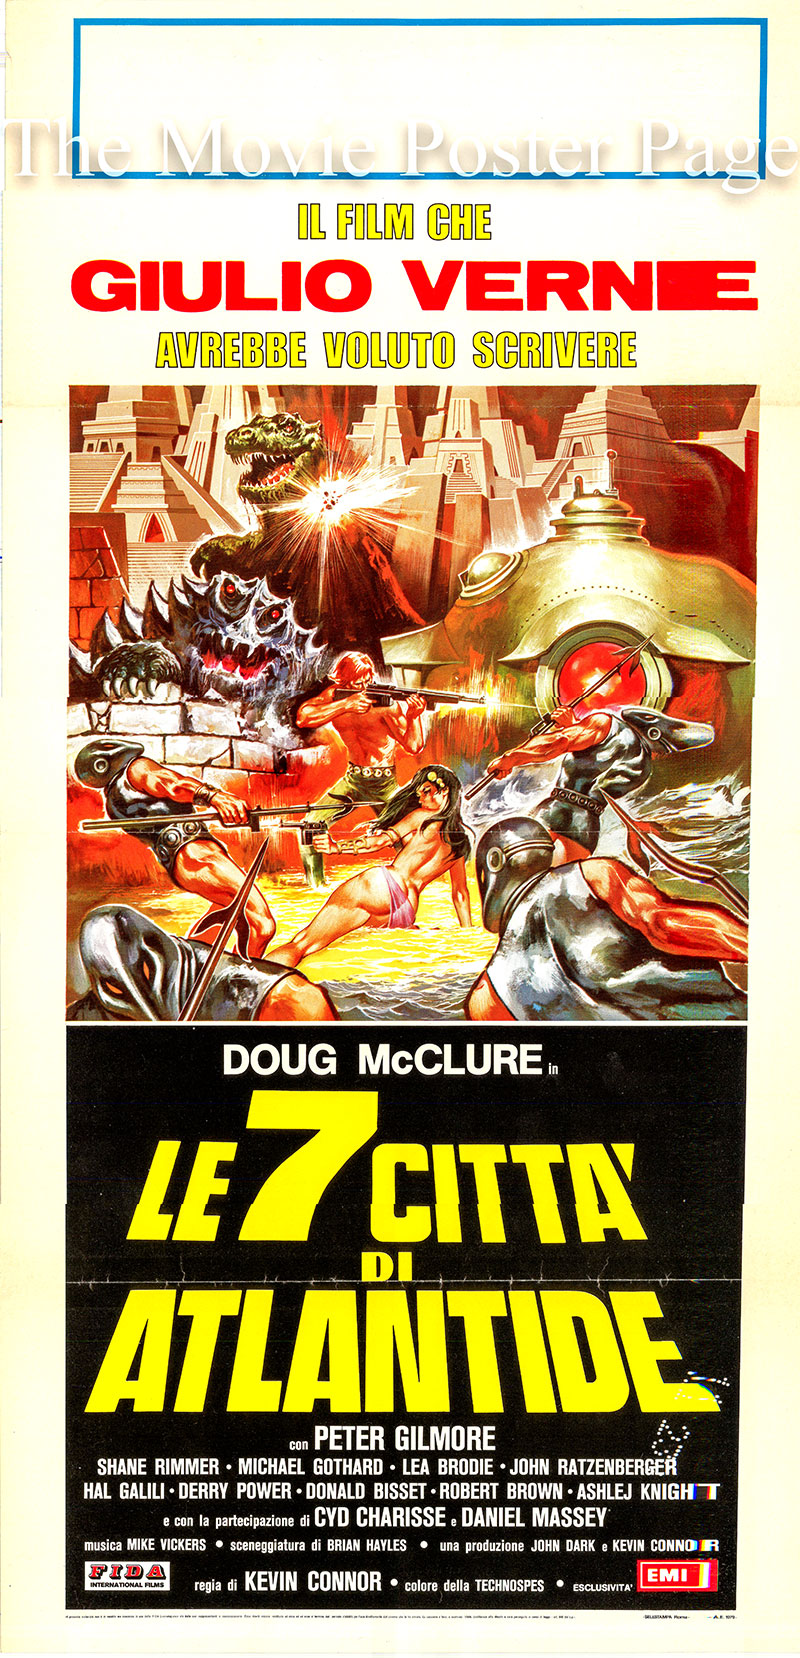 Pictured is an Italian locandina  poster for the 1978 Kevin Connor film The Seven Cities of Atlantis, starring Doug McClure.